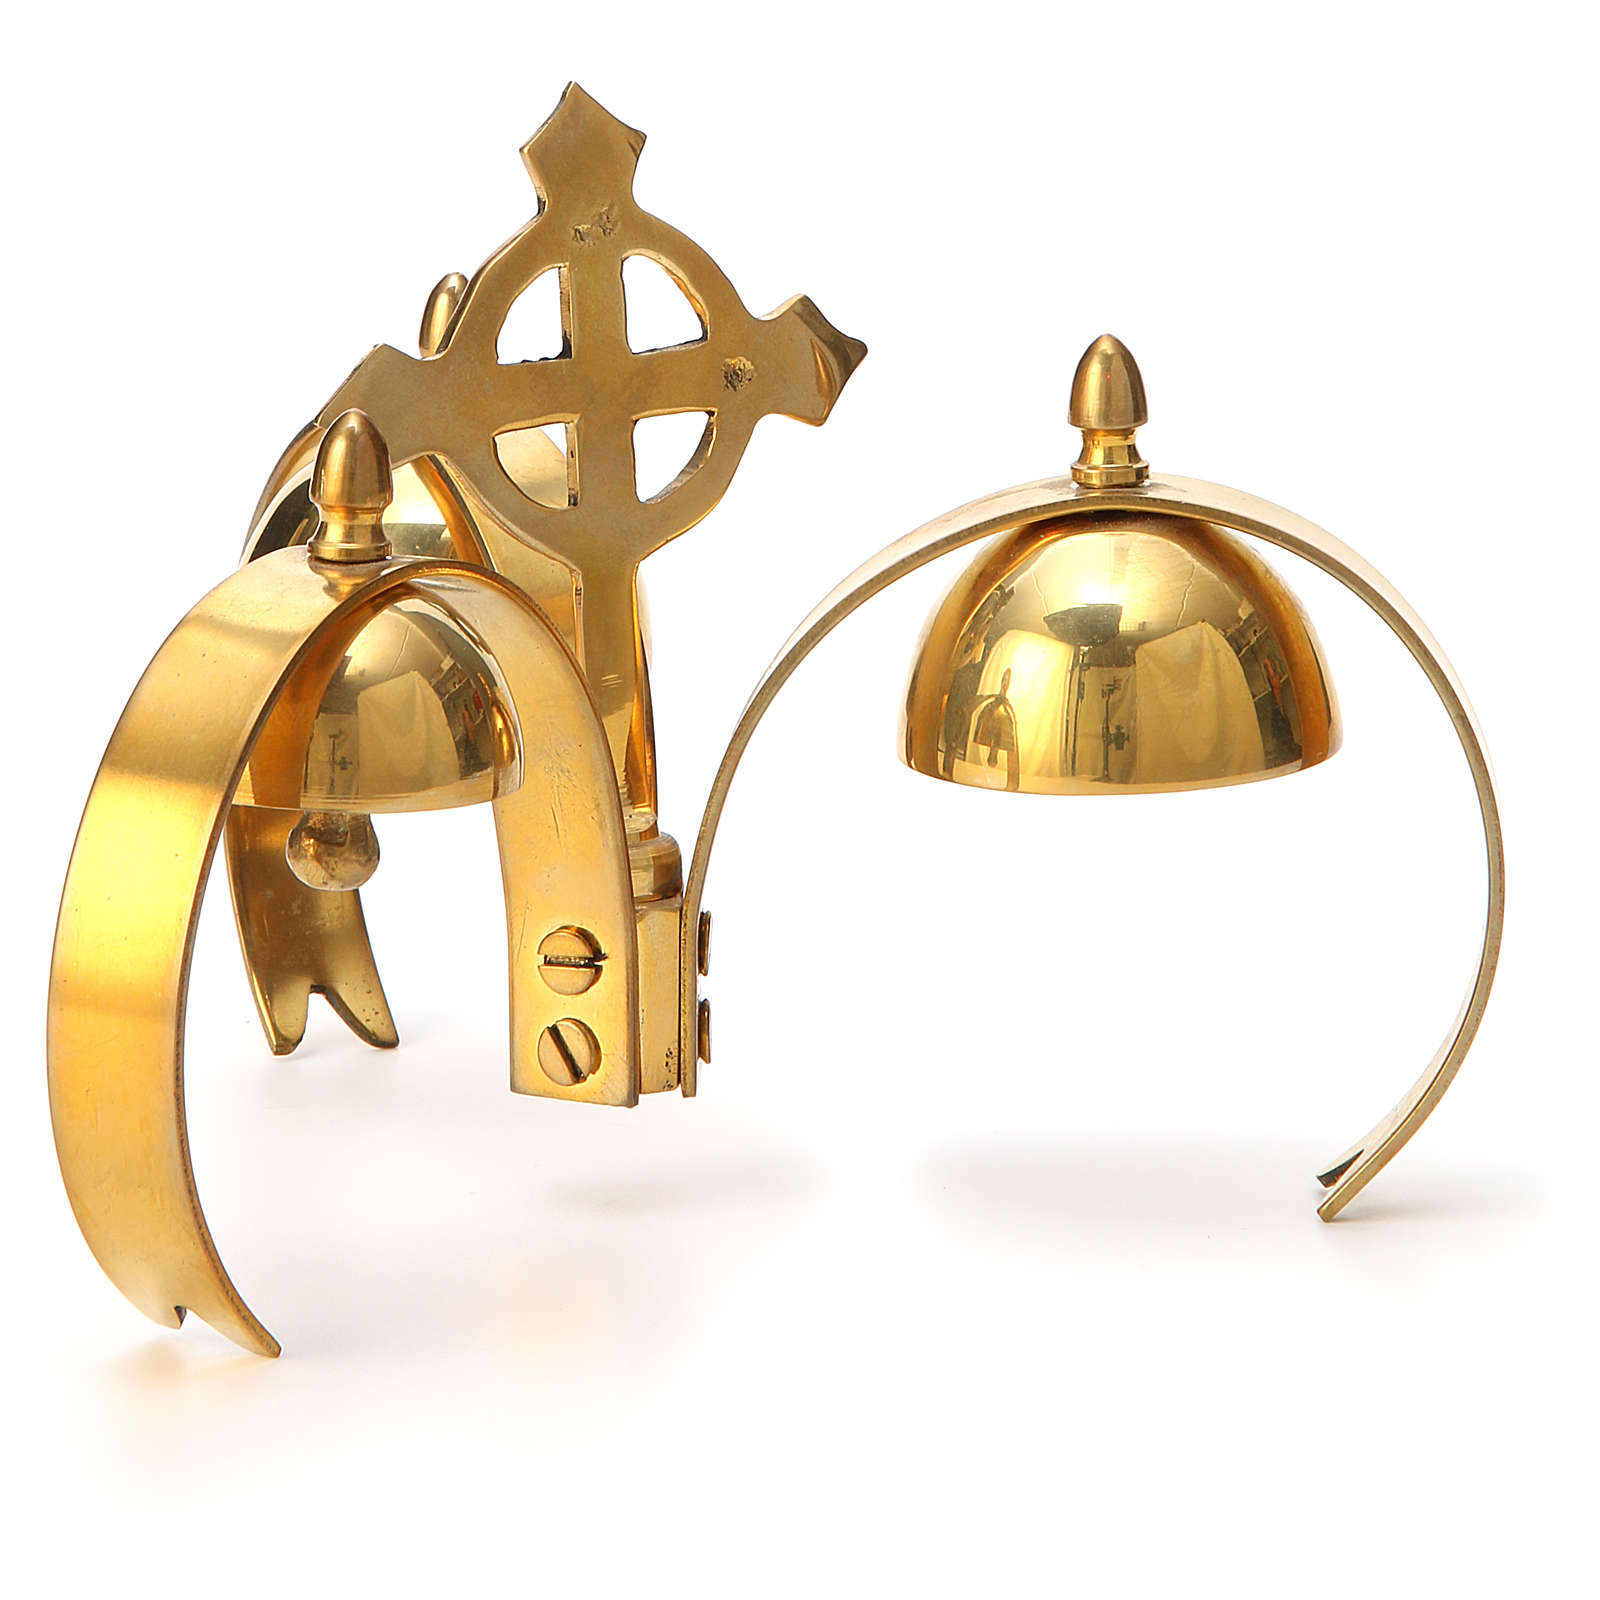 Liturgical Bell modern style, 3 sounds 3